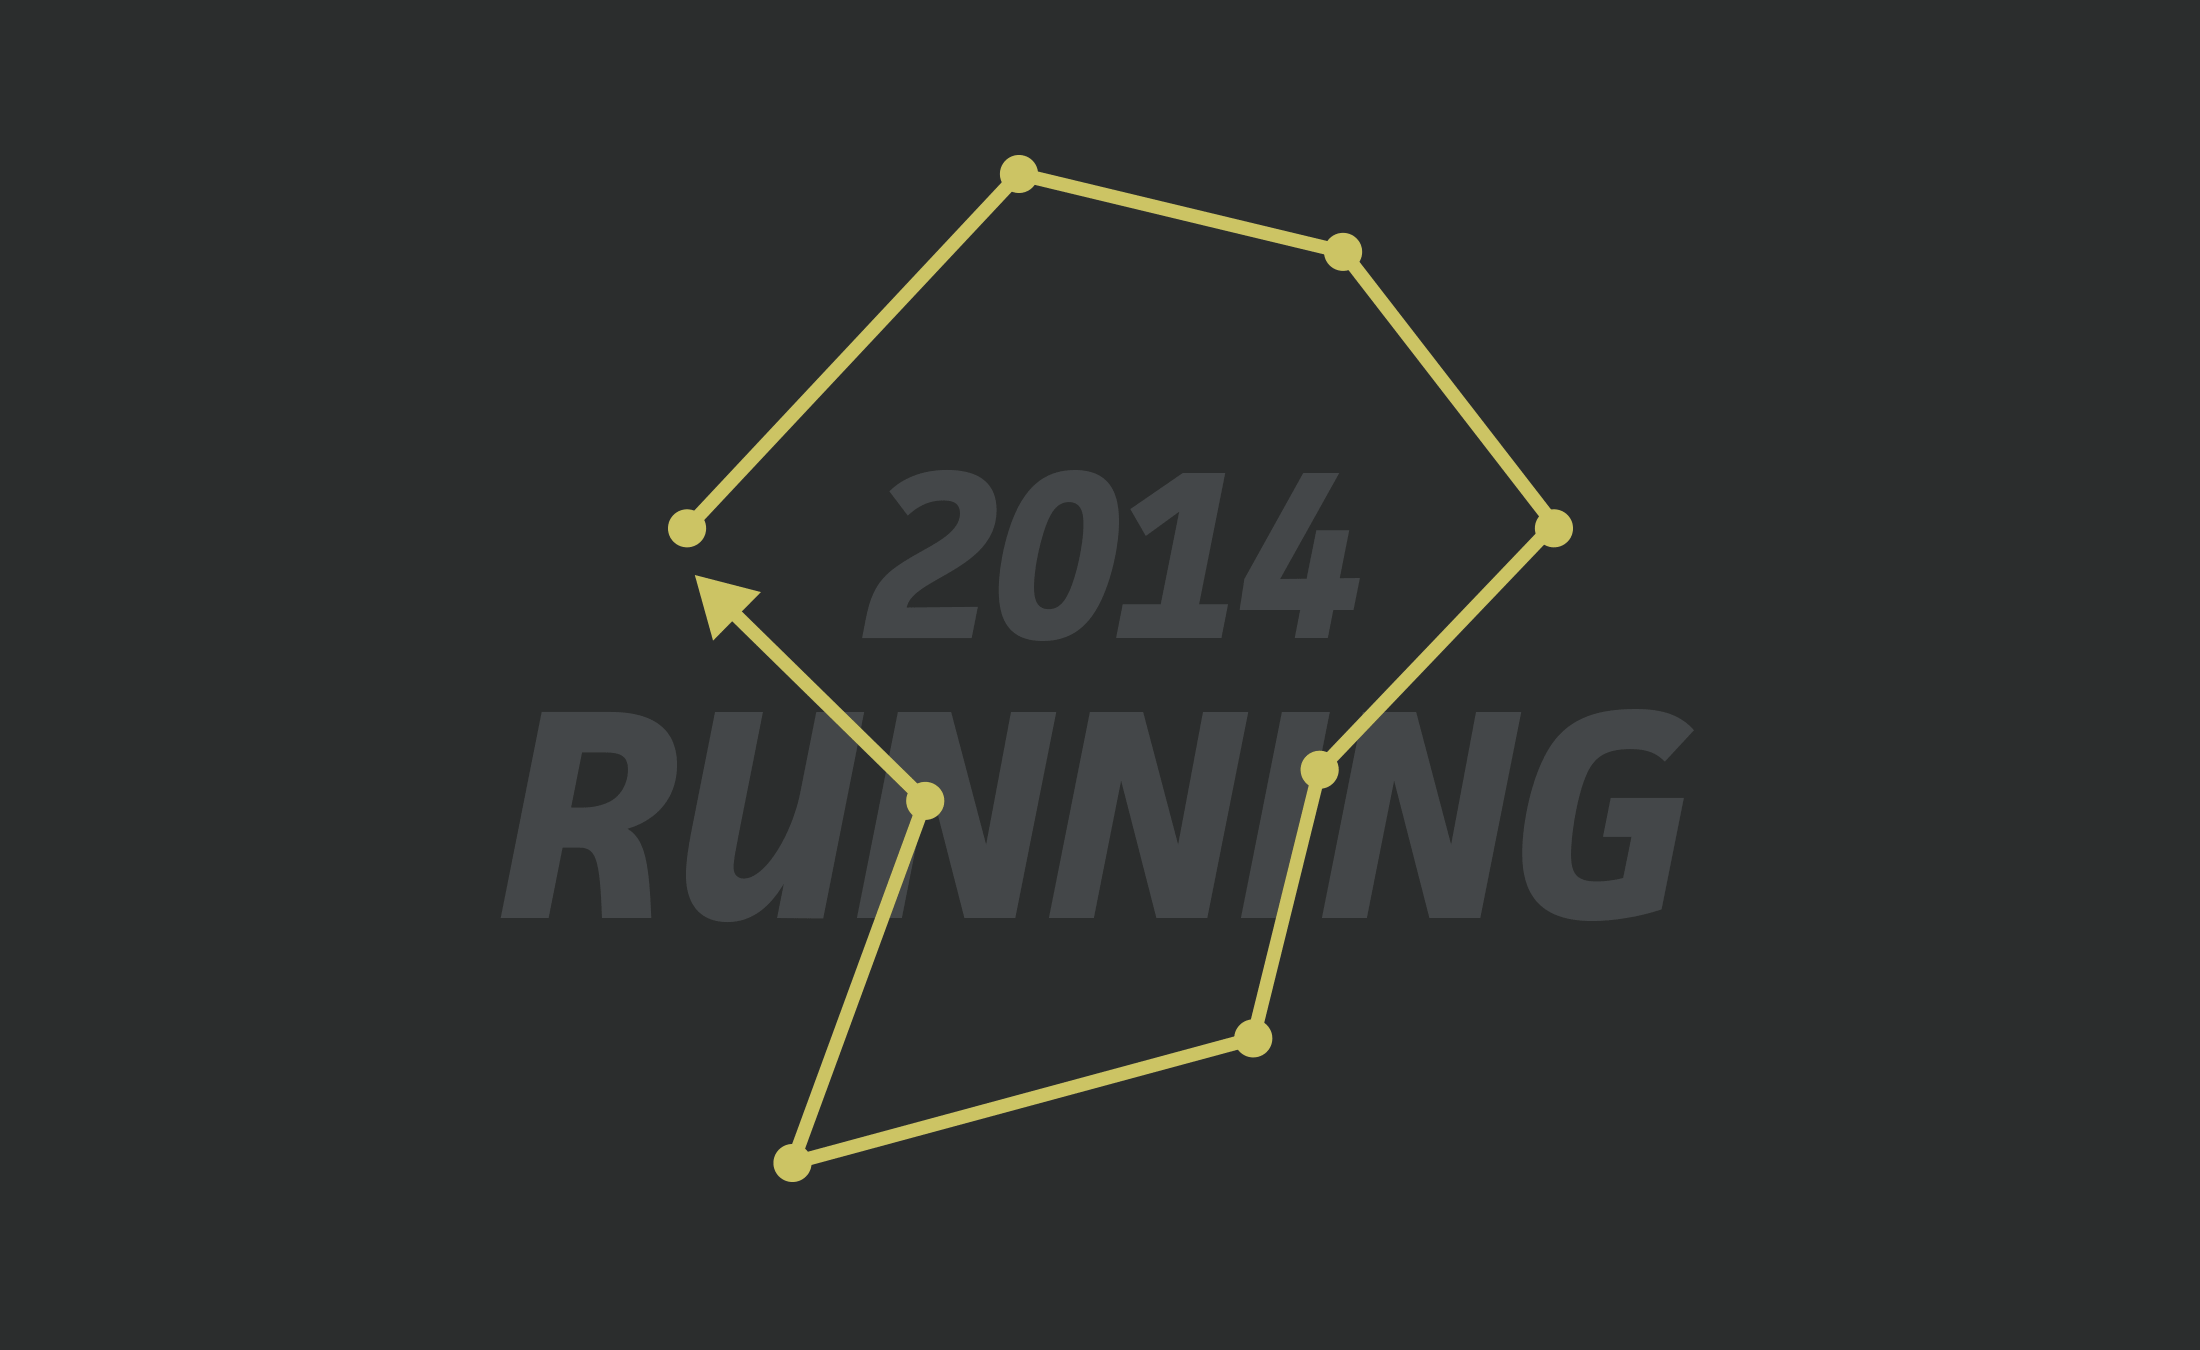 The logo for my 2014 Running website project representing exploratory running routes.